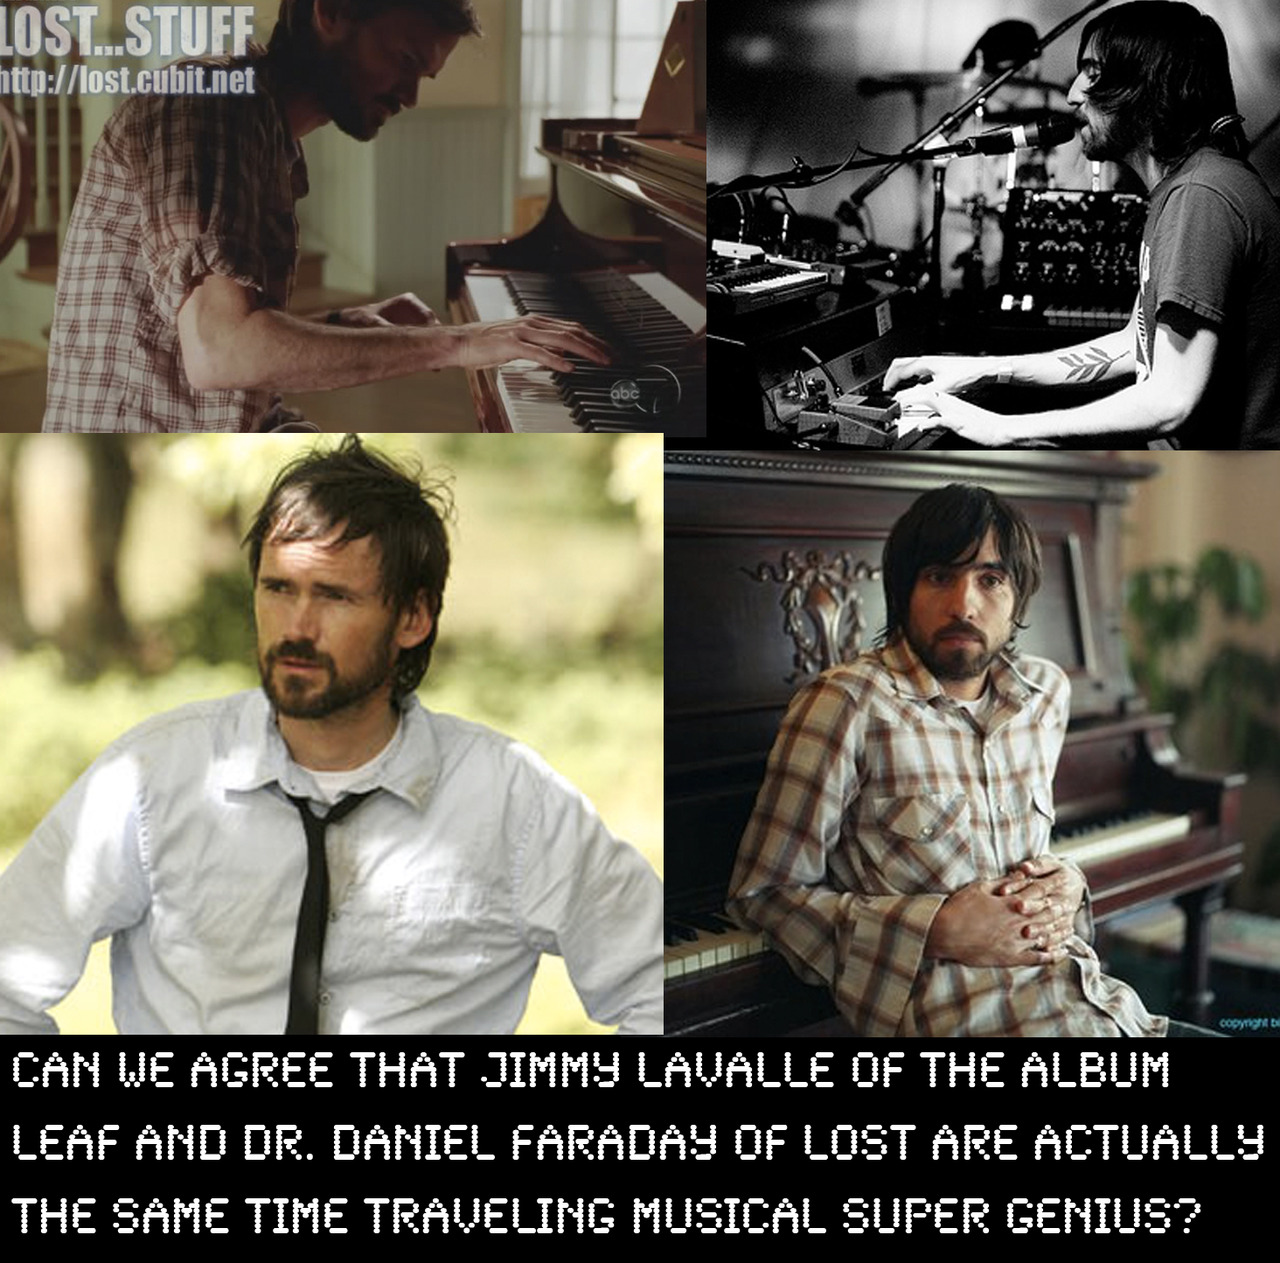 Can we agree that Jimmy LaValle of The Album Leaf and Dr. Daniel Faraday of Lost are actually the same time traveling musical super genius?